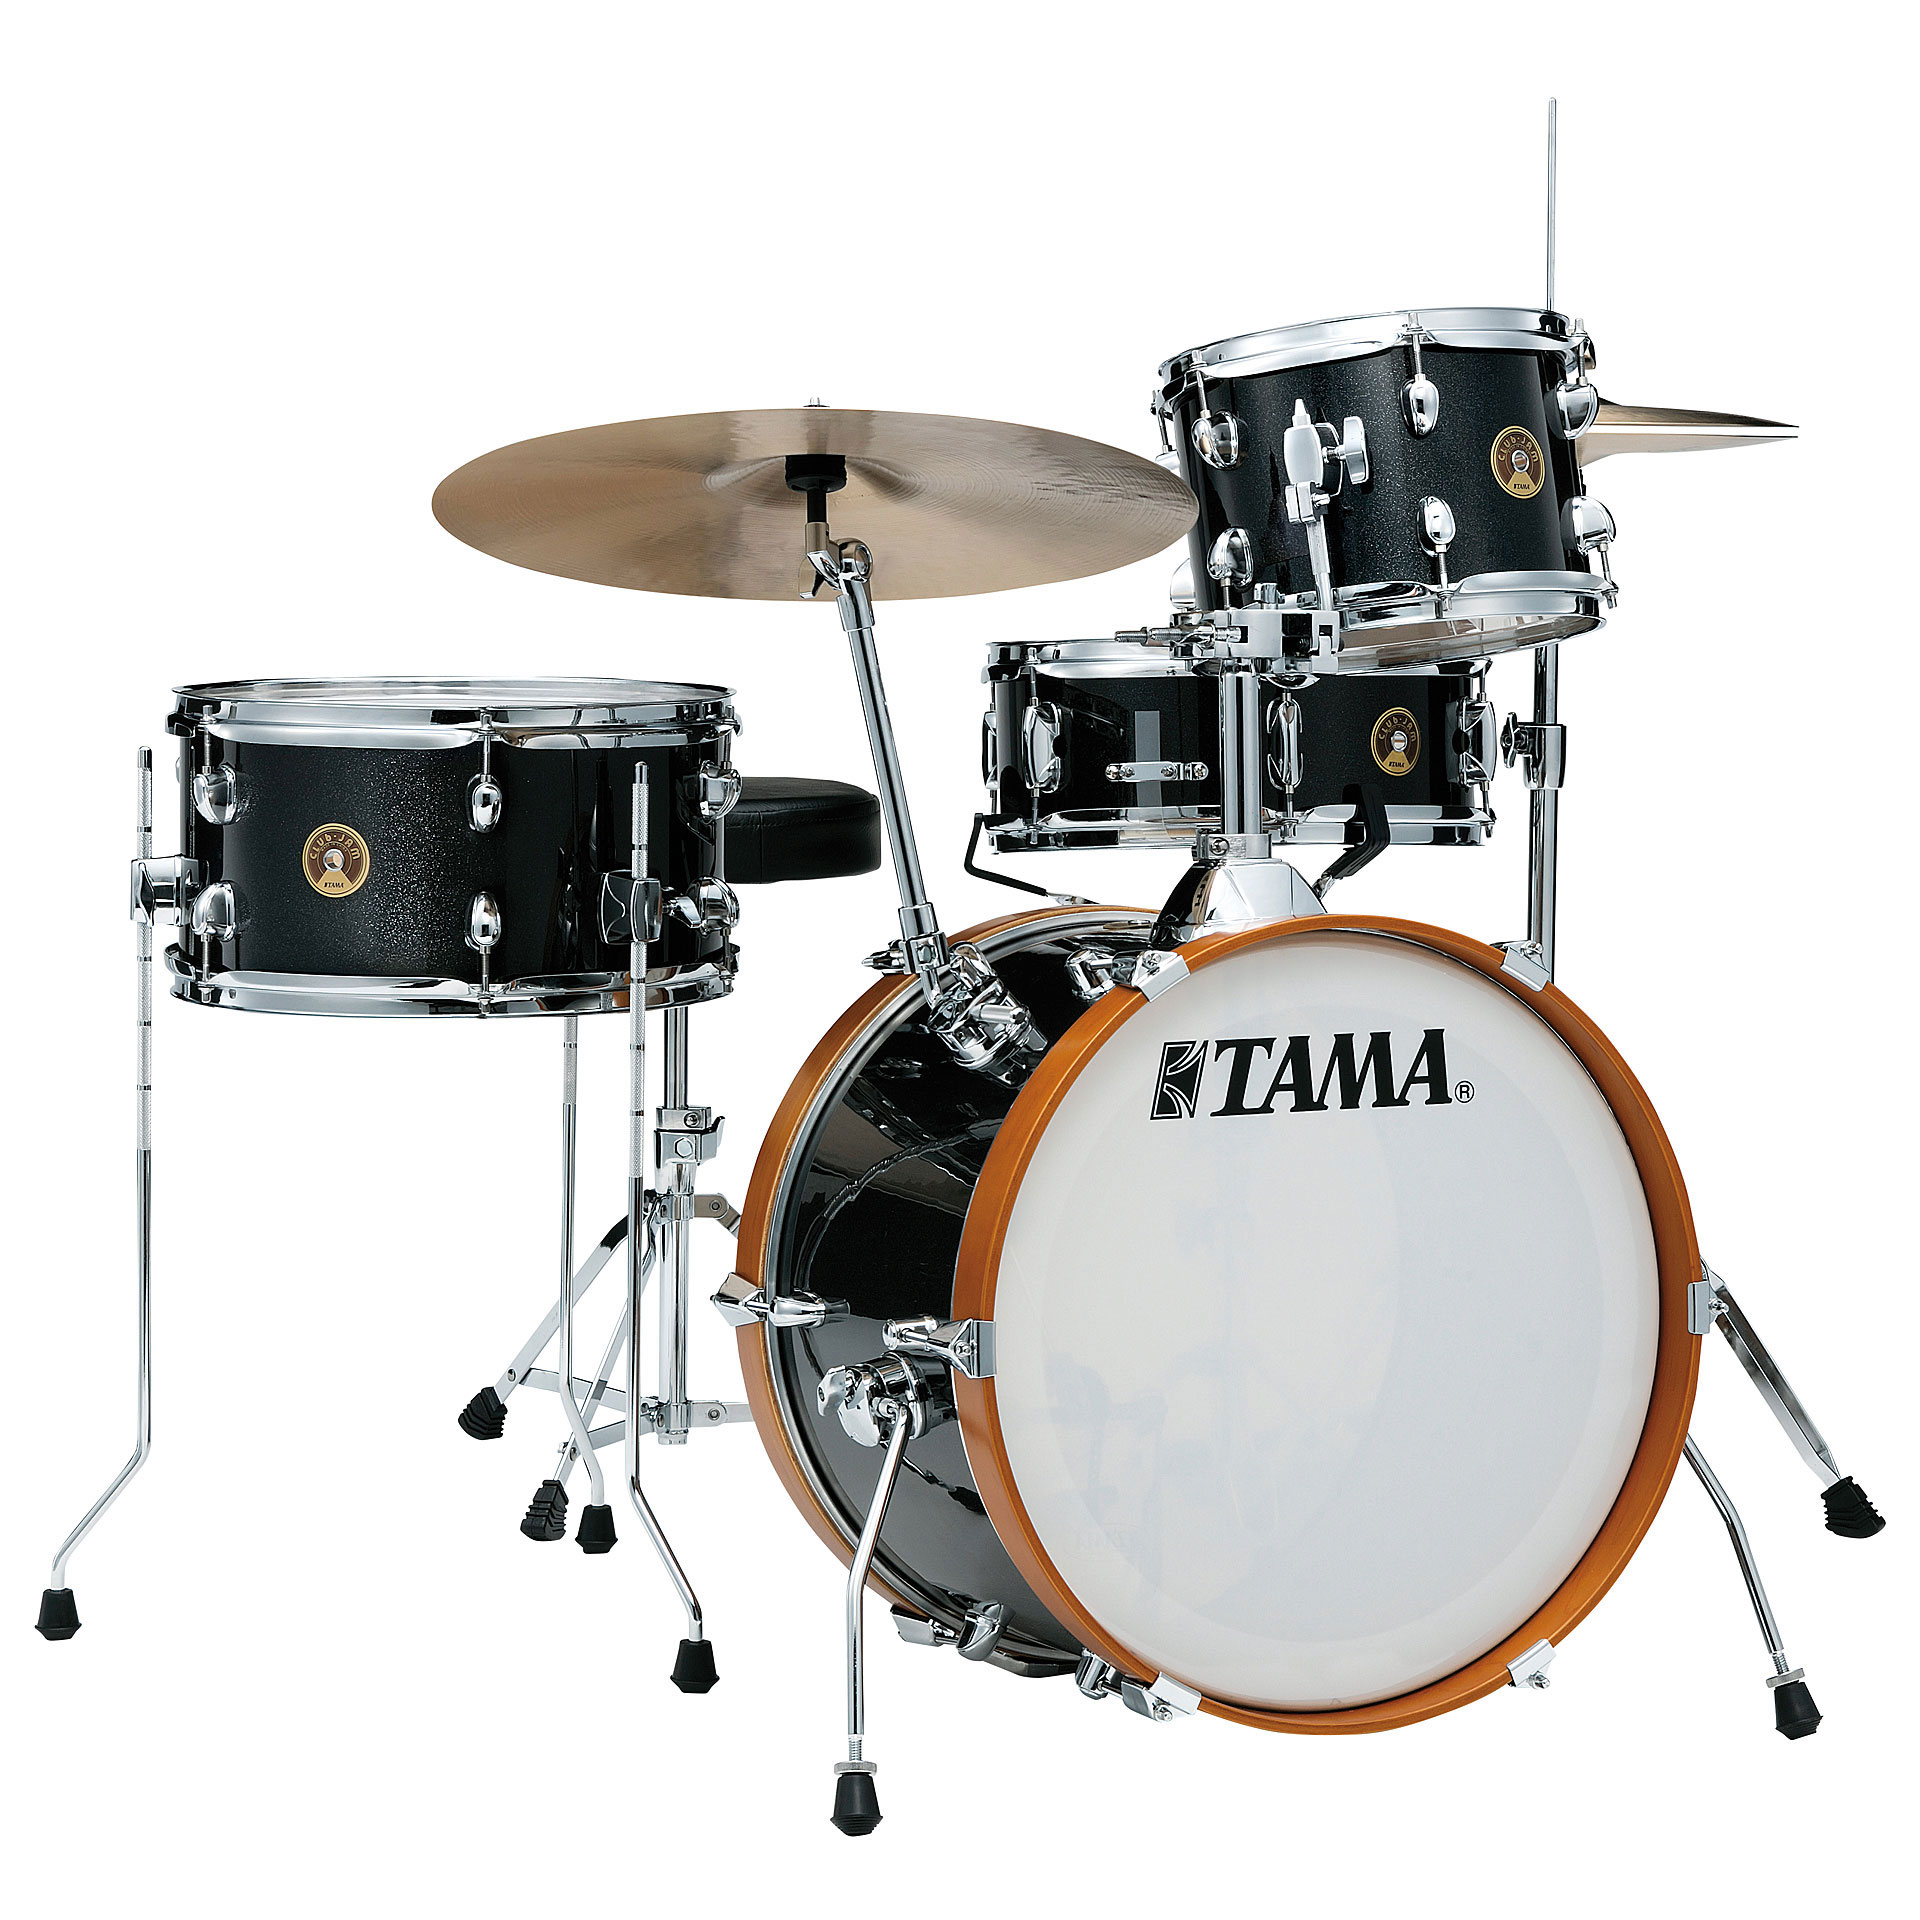 "Tama Club-Jam 4-Piece Drum Set Shell Pack (18"" Bass, 10/14"" Toms, 13"" Snare) in Wrap Finish"